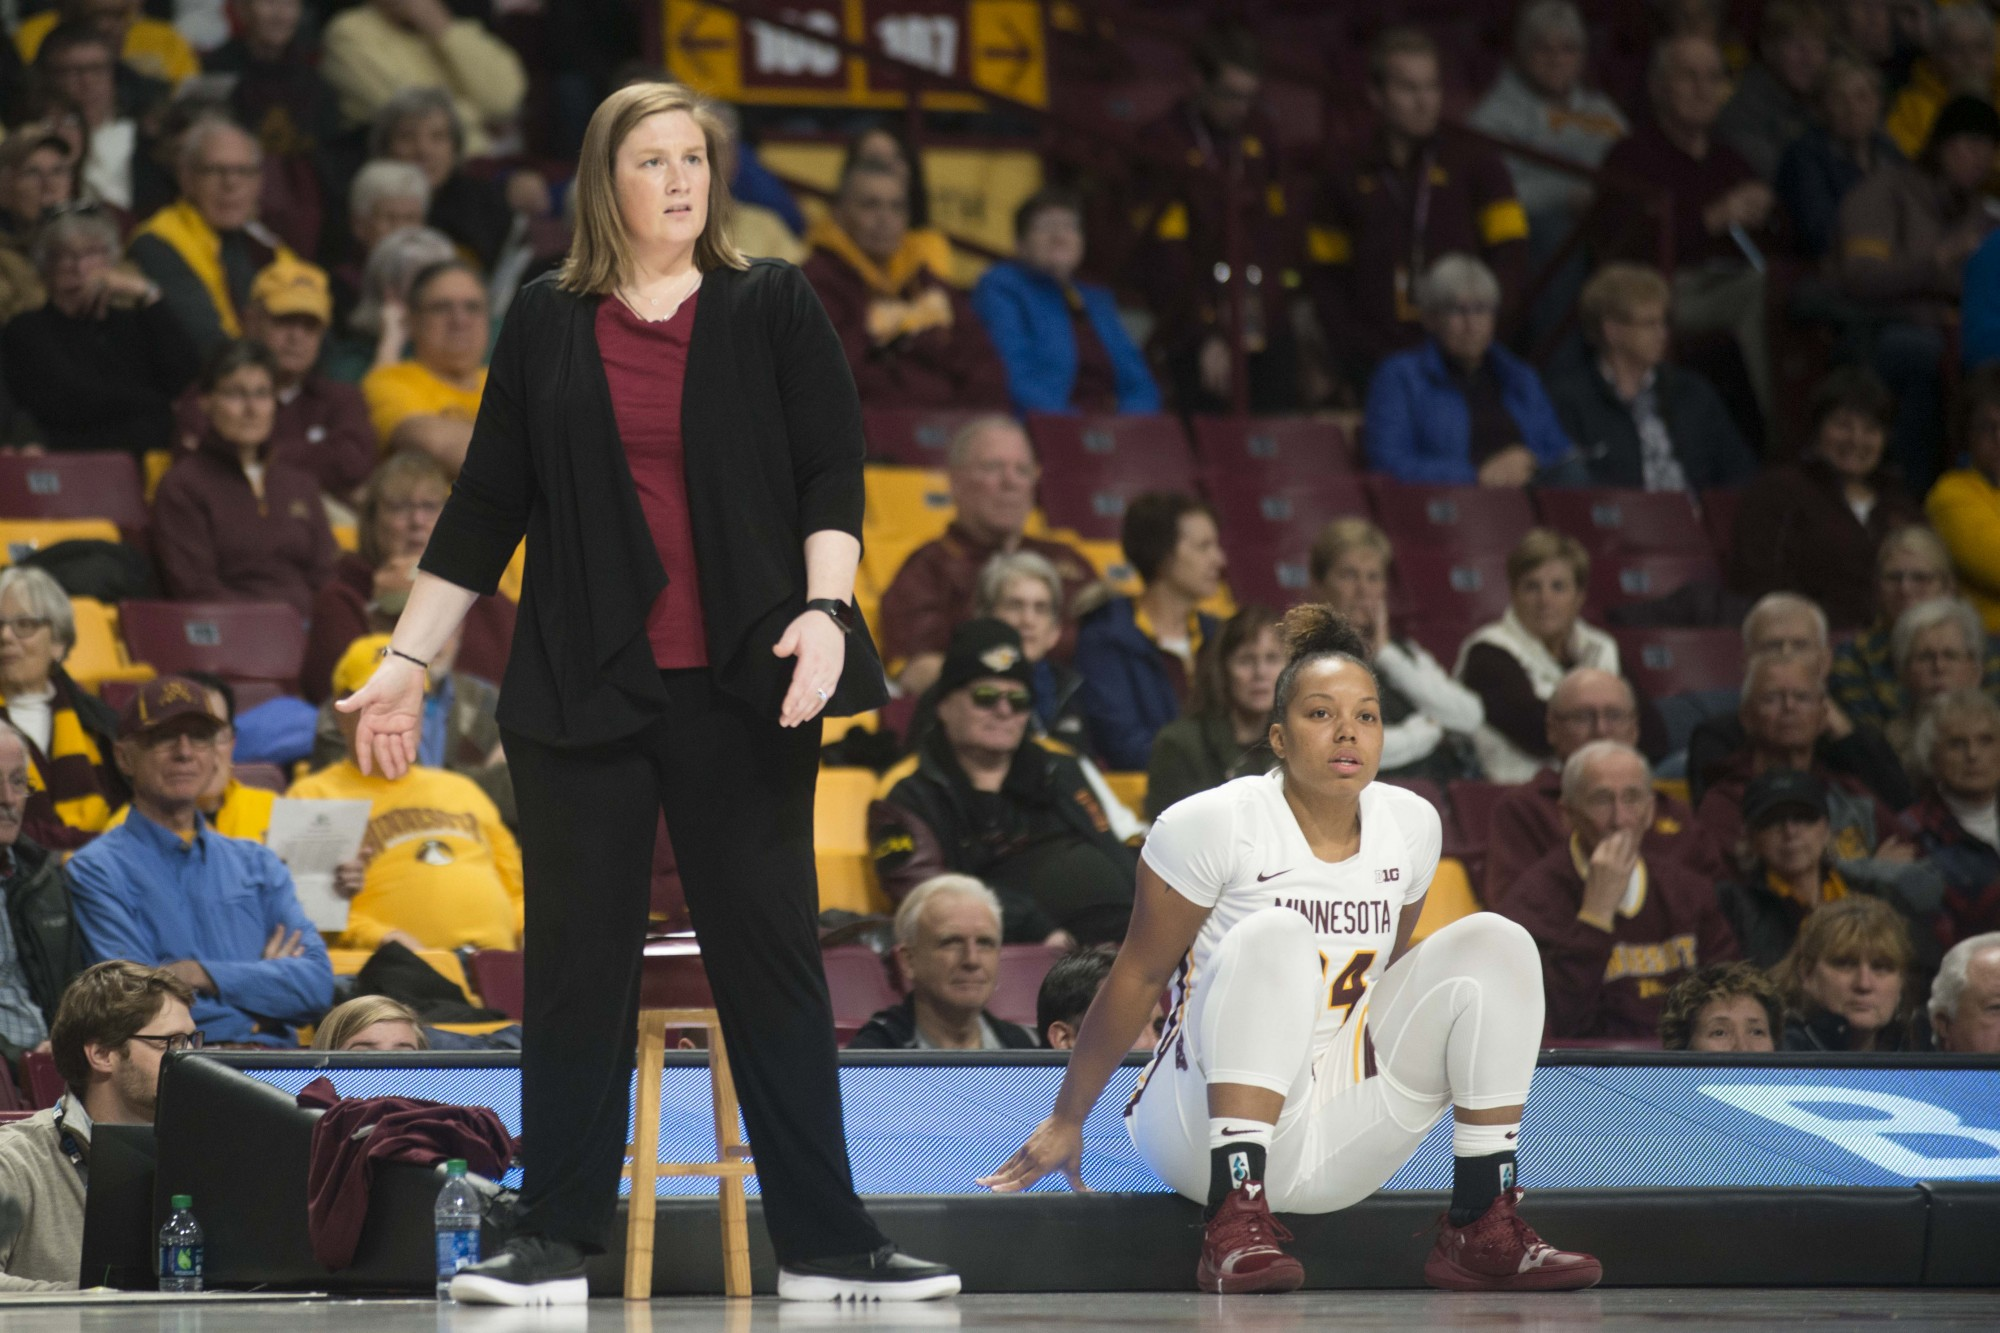 Head coach Lindsay Whalen reacts to a scored point at Williams Arena on Tuesday, Nov. 5, 2019. The Gophers fell to Missouri State 69-77.